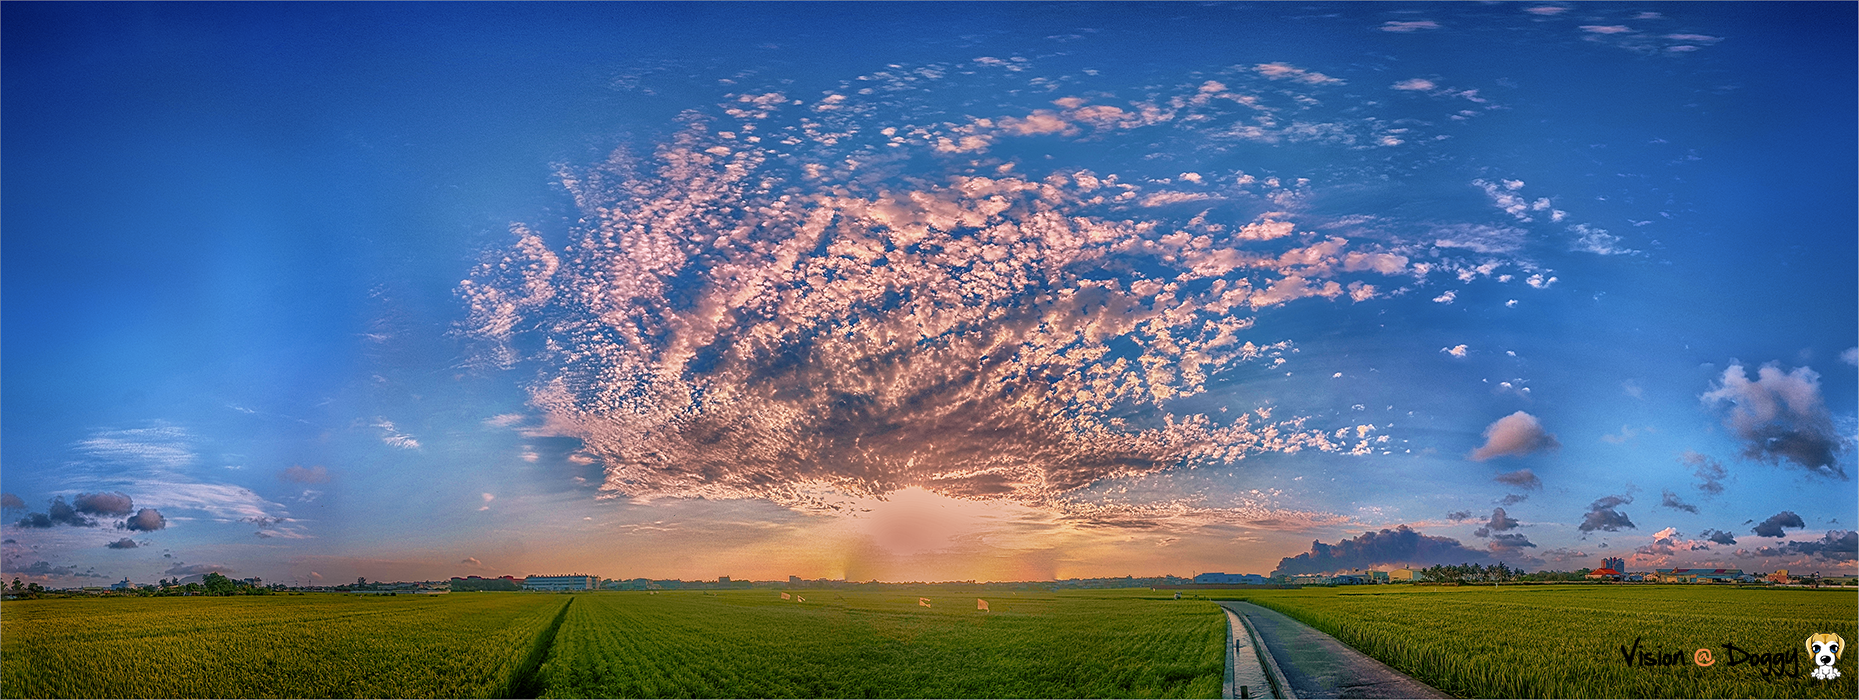 http://gnl.hunternet.com.tw/weider/web/wp-content/gallery/keliao/pic-20180423-01-sunset.png